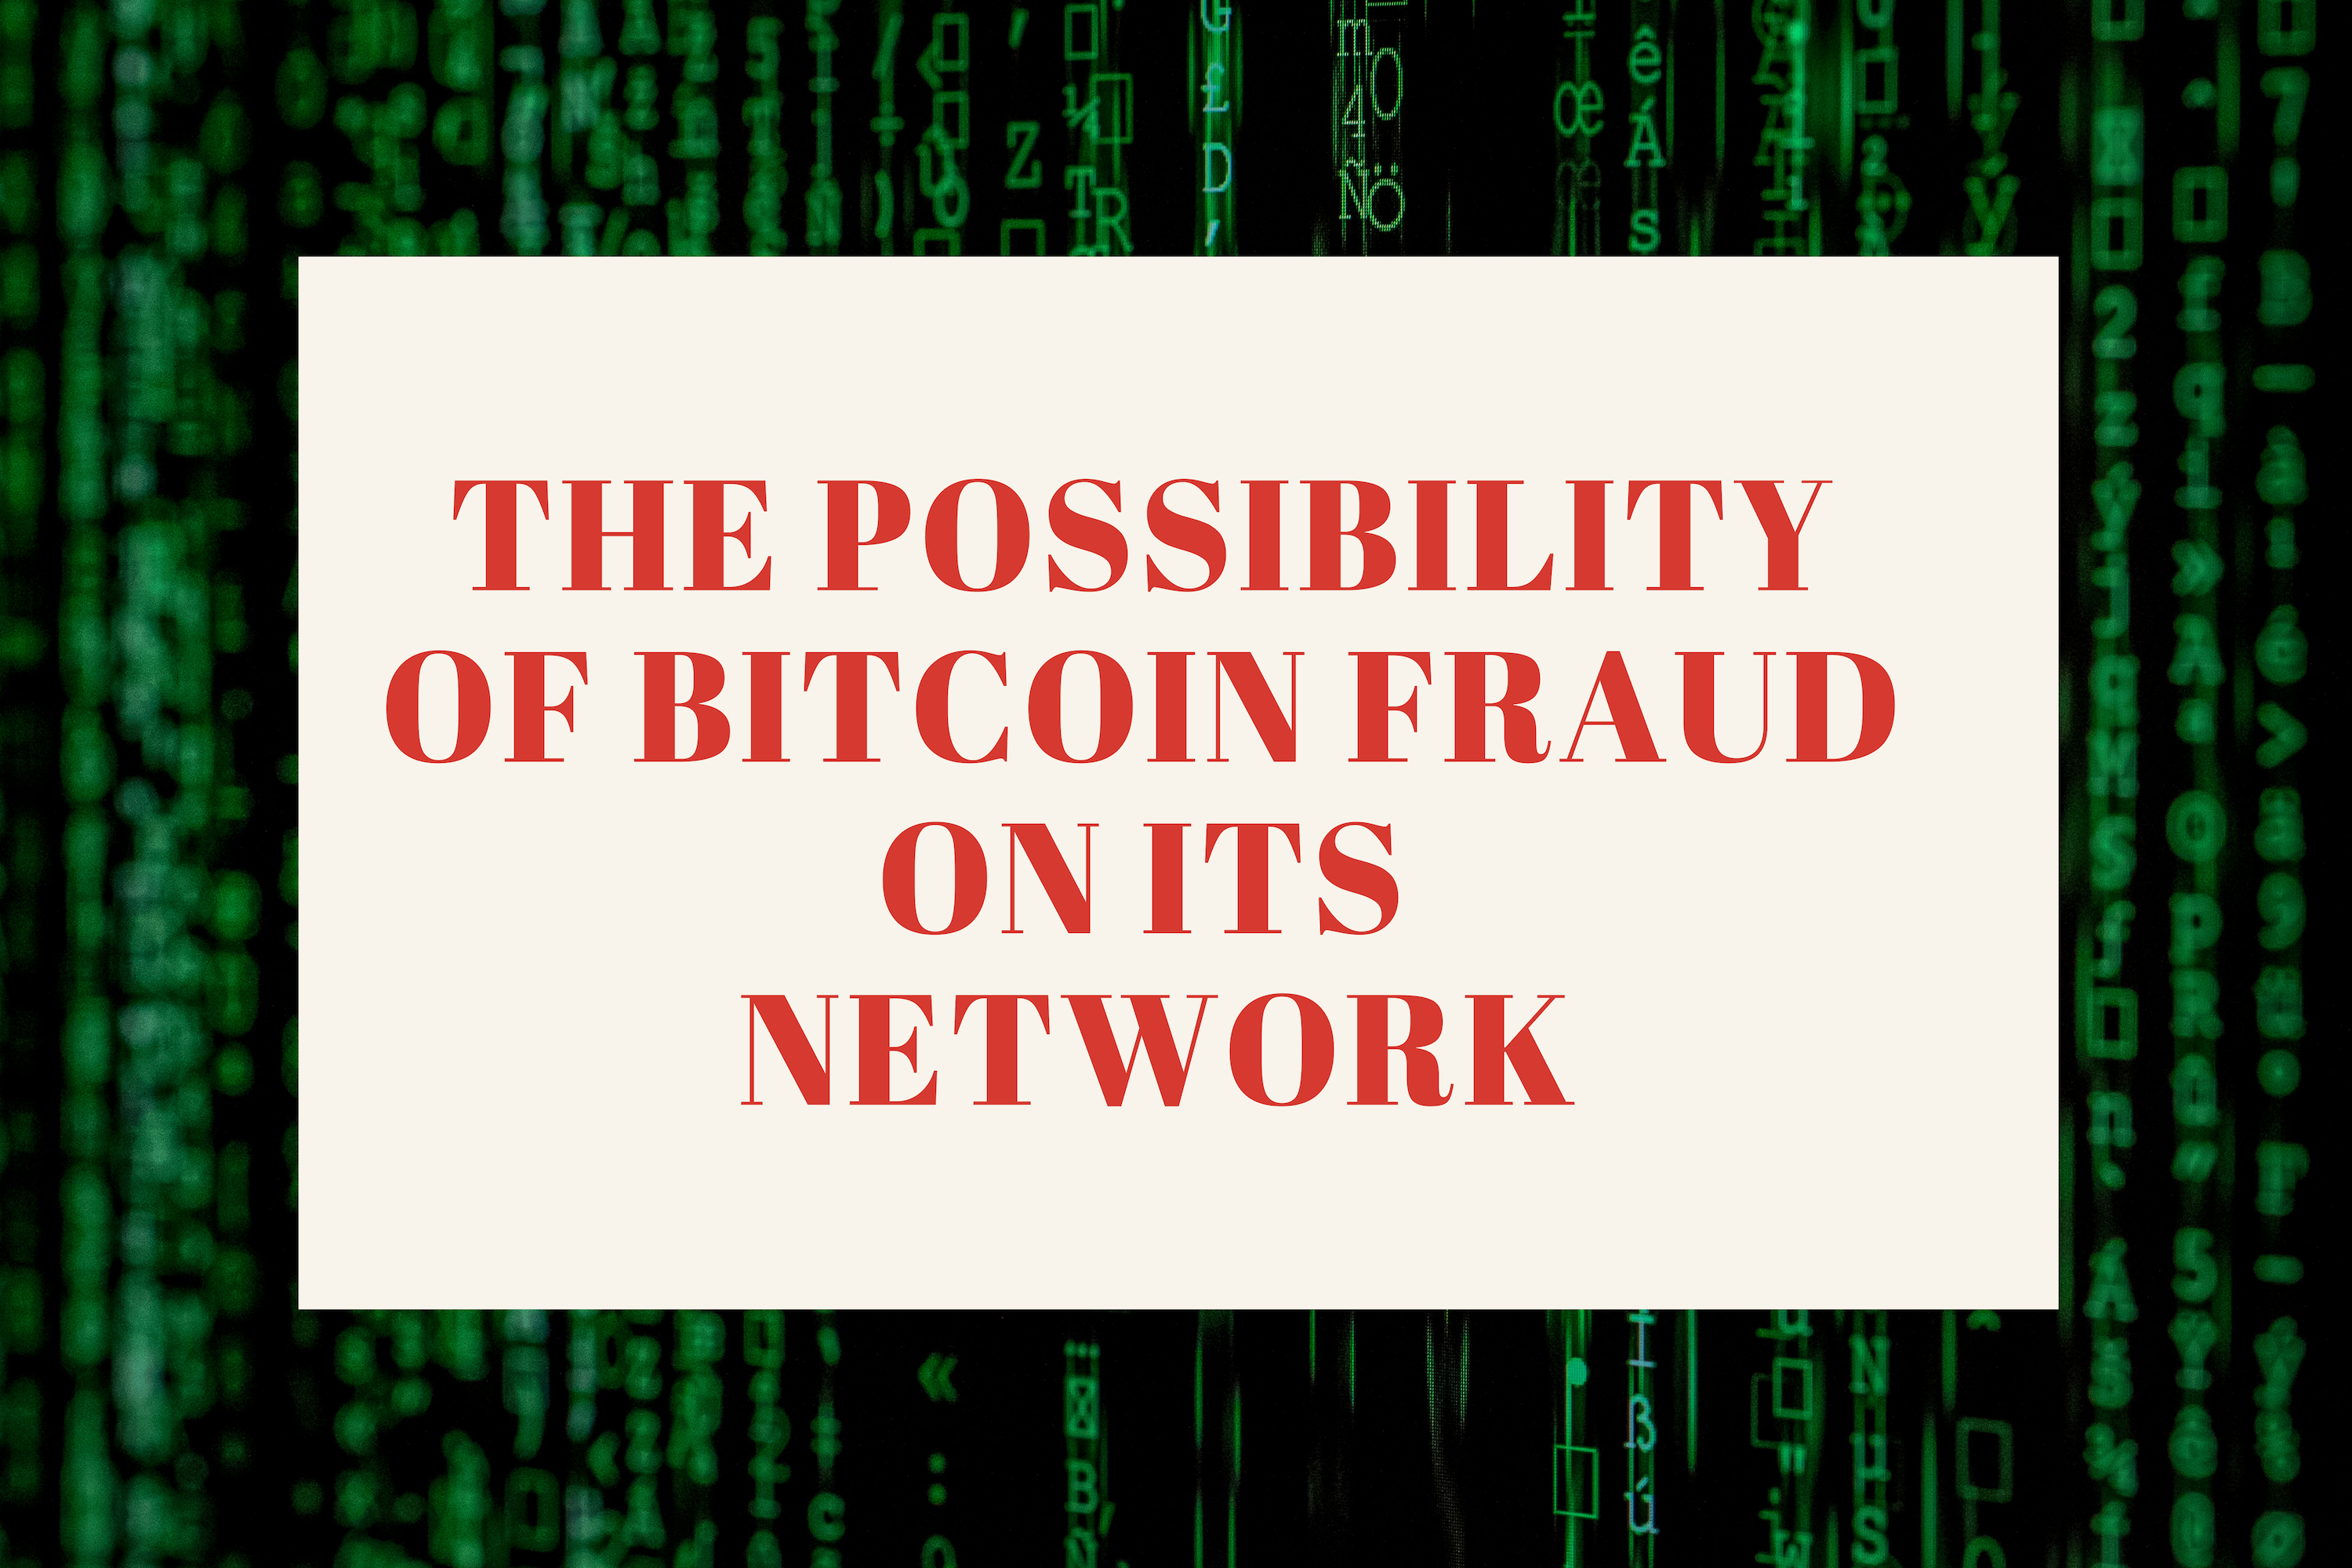 Possibility of fraud